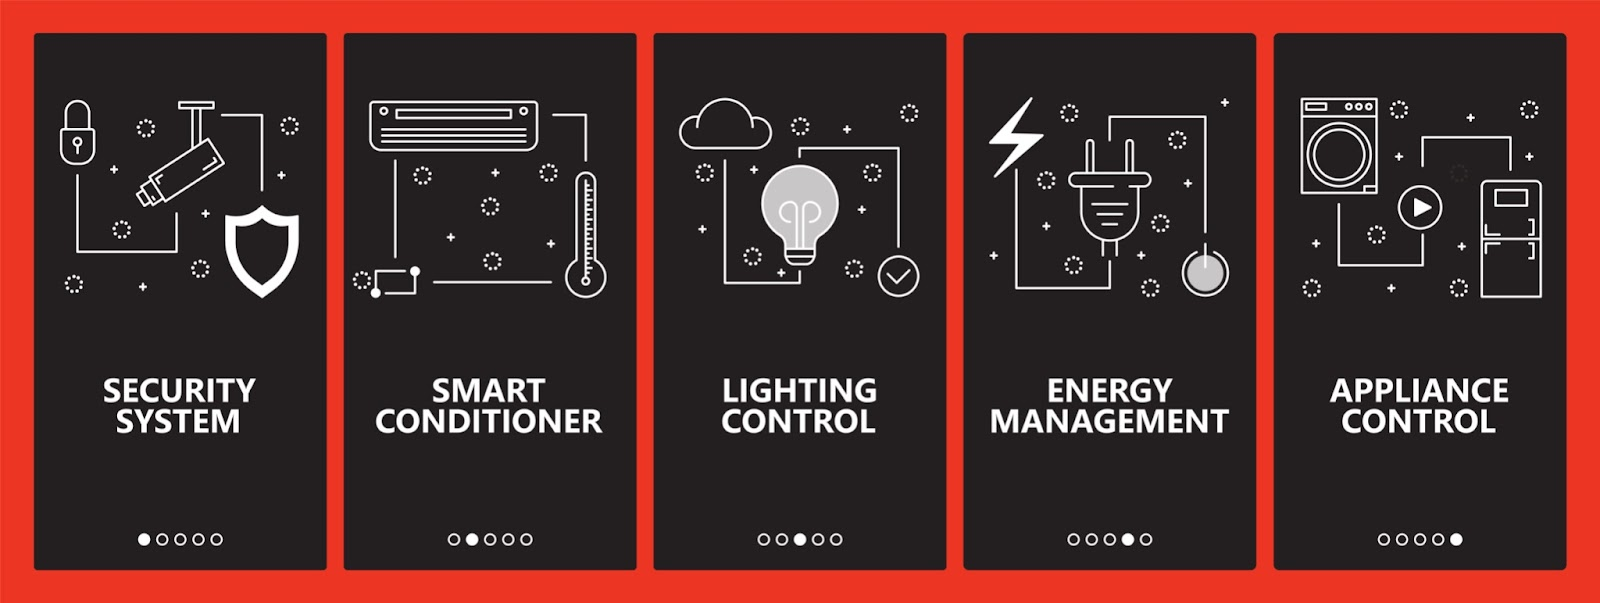 Image of different home automation including security, temperature control, lighting, energy efficiency control and appliances